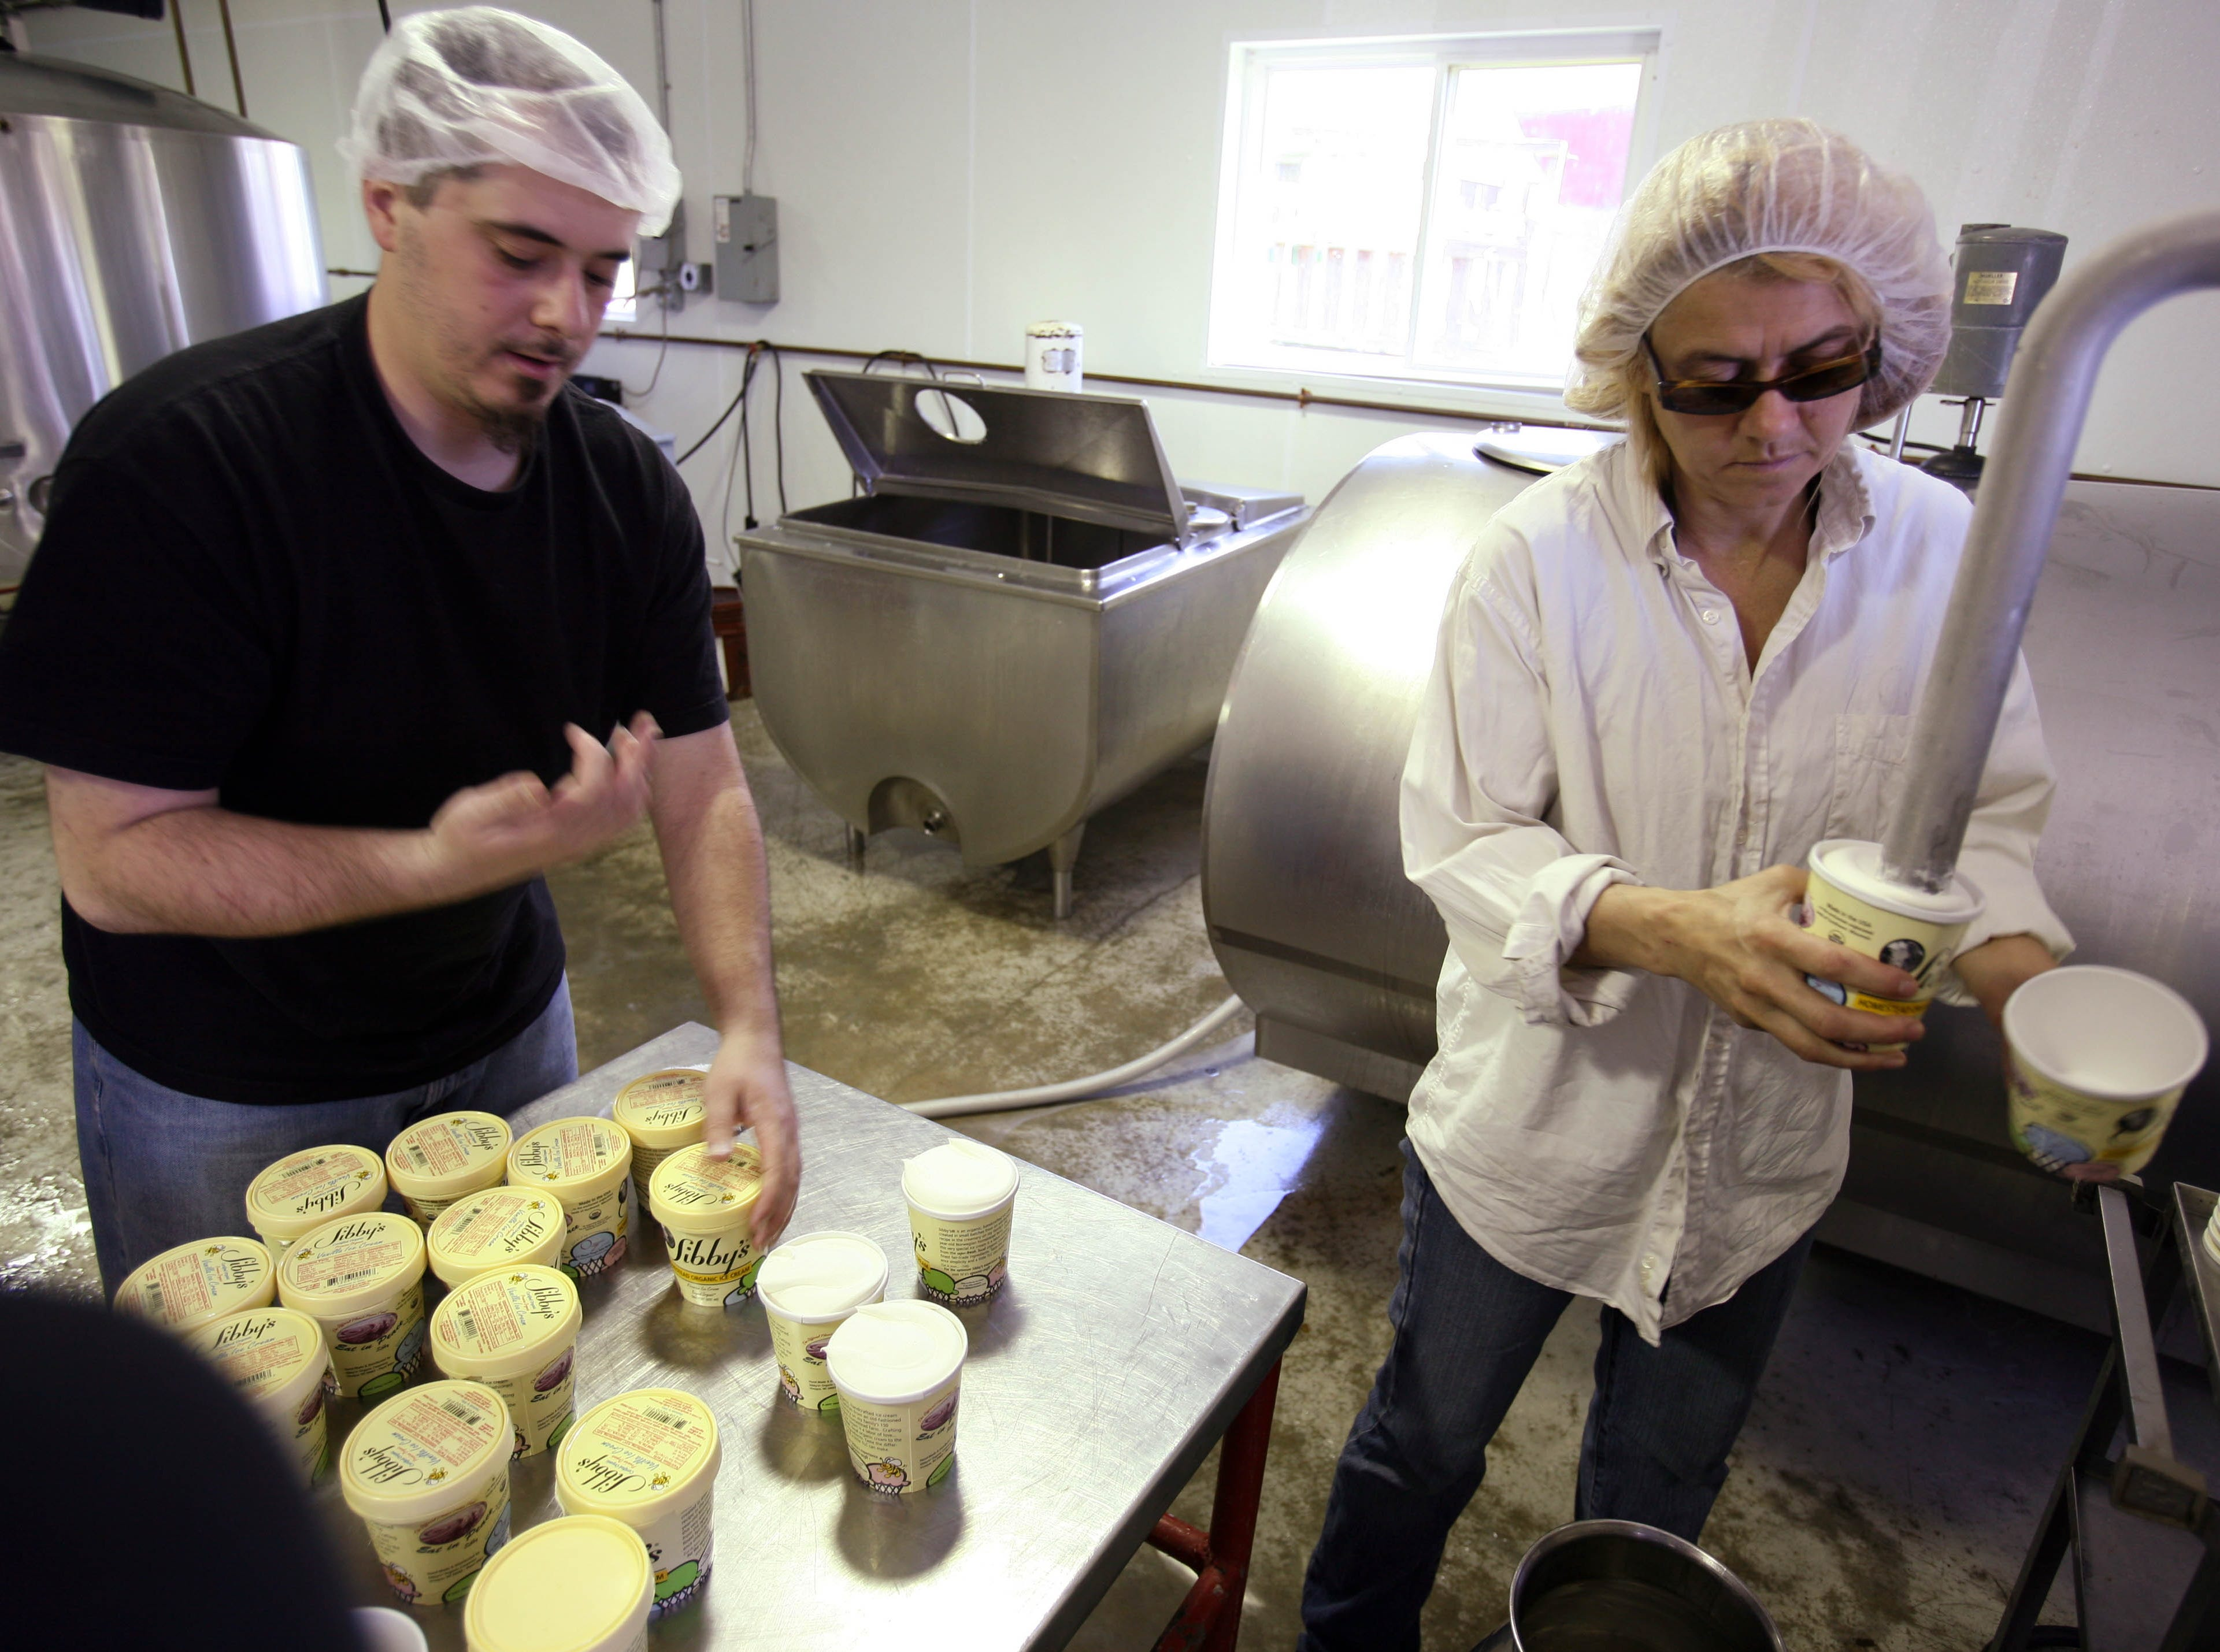 2008: Milk production has been leveraging another revenue stream through the growth of organic products. Sue Sebion (right) filled some of the 3,200 pints of vanilla ice cream while employee William Asad put on covers at Sibby's Premium Organic Ice Cream near Viroquas. The organic ice cream custard product is handmade from fresh, local milk.